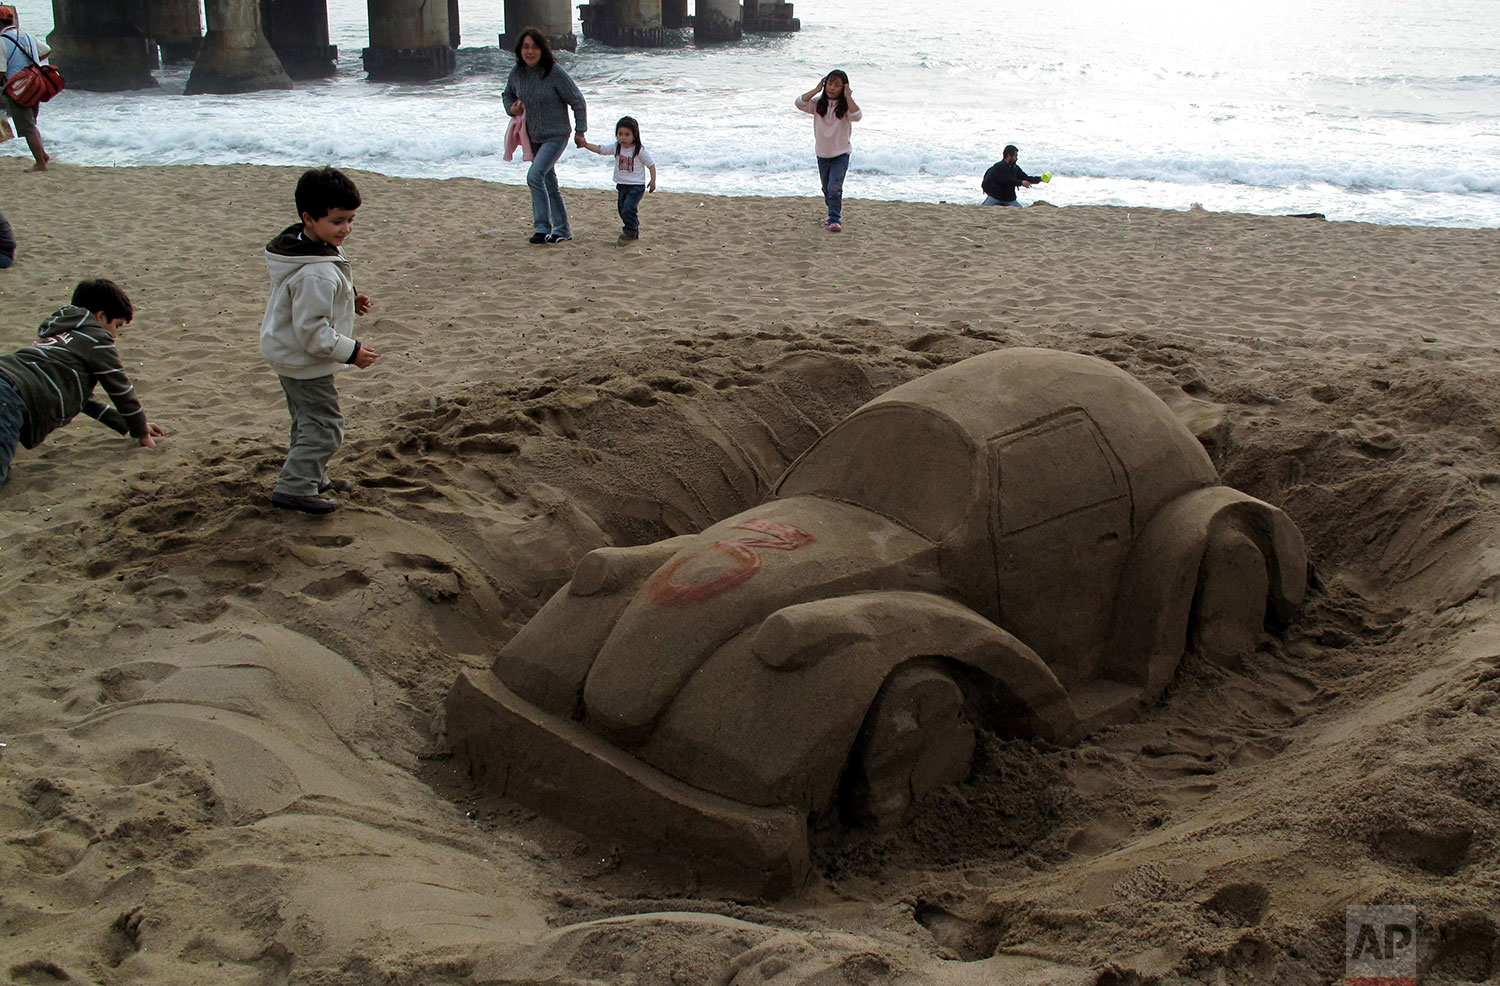 Children play near a sand sculpture in the likeness of a Volkswagen bug on the beach in Vina del Mar, Chile, Aug. 30, 2009. (AP Photo/Santiago Llanquin)